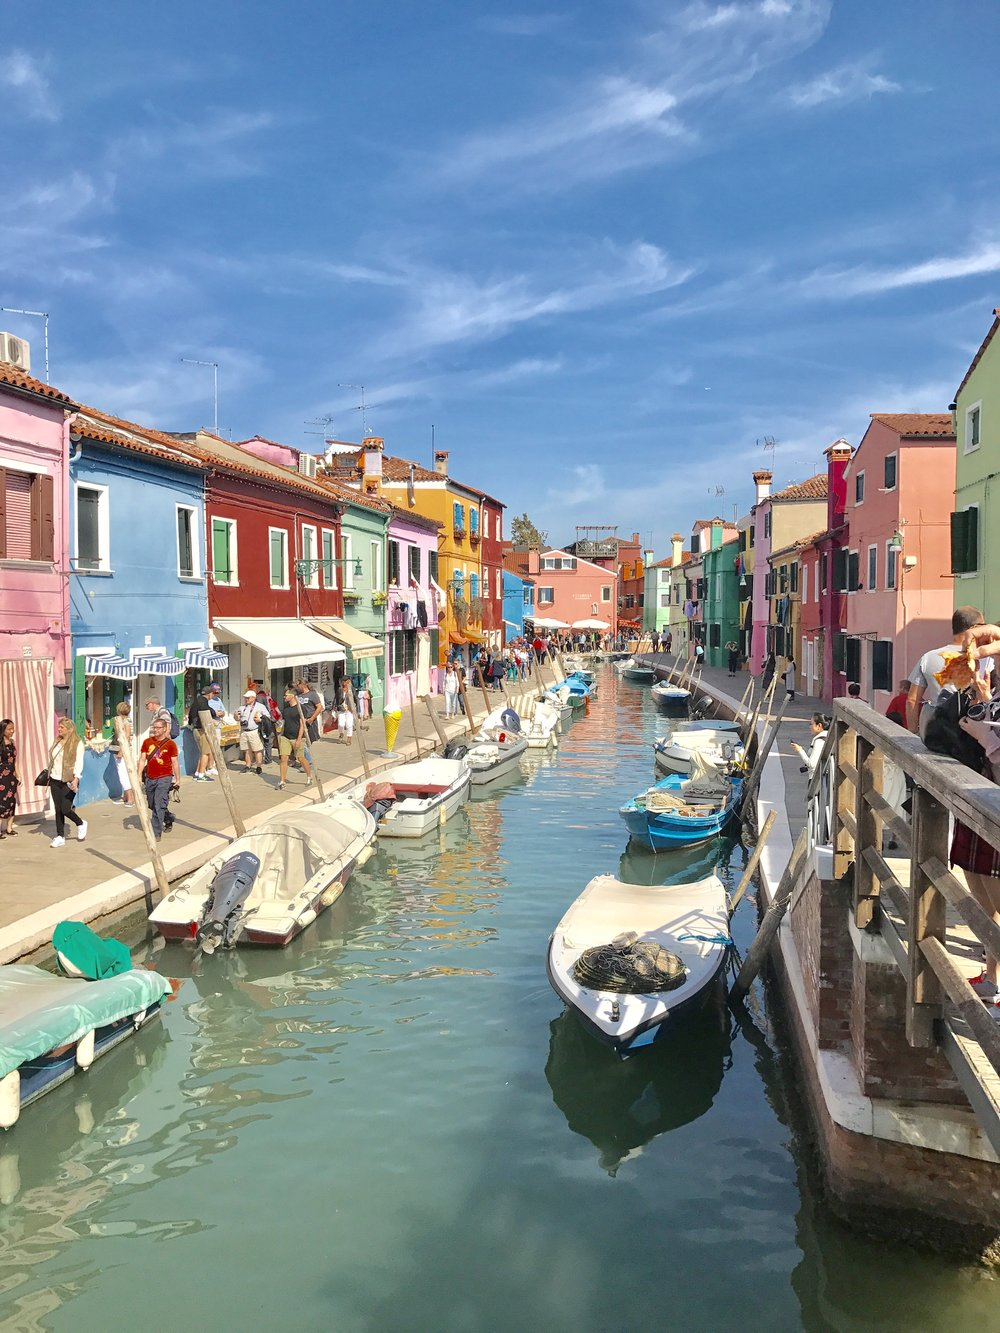 One of the many colorful walkway in Burano, Italy